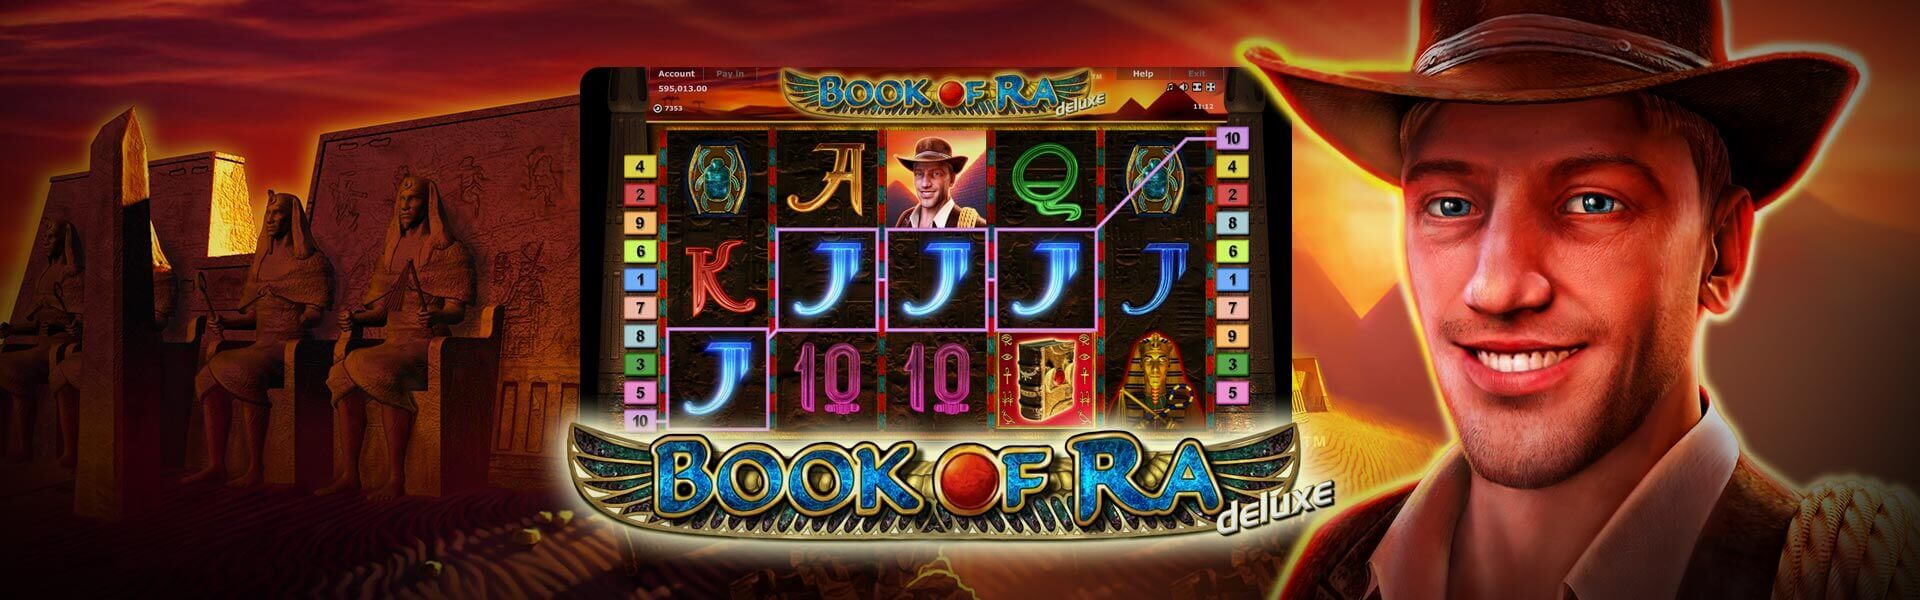 book of ra - live casinos